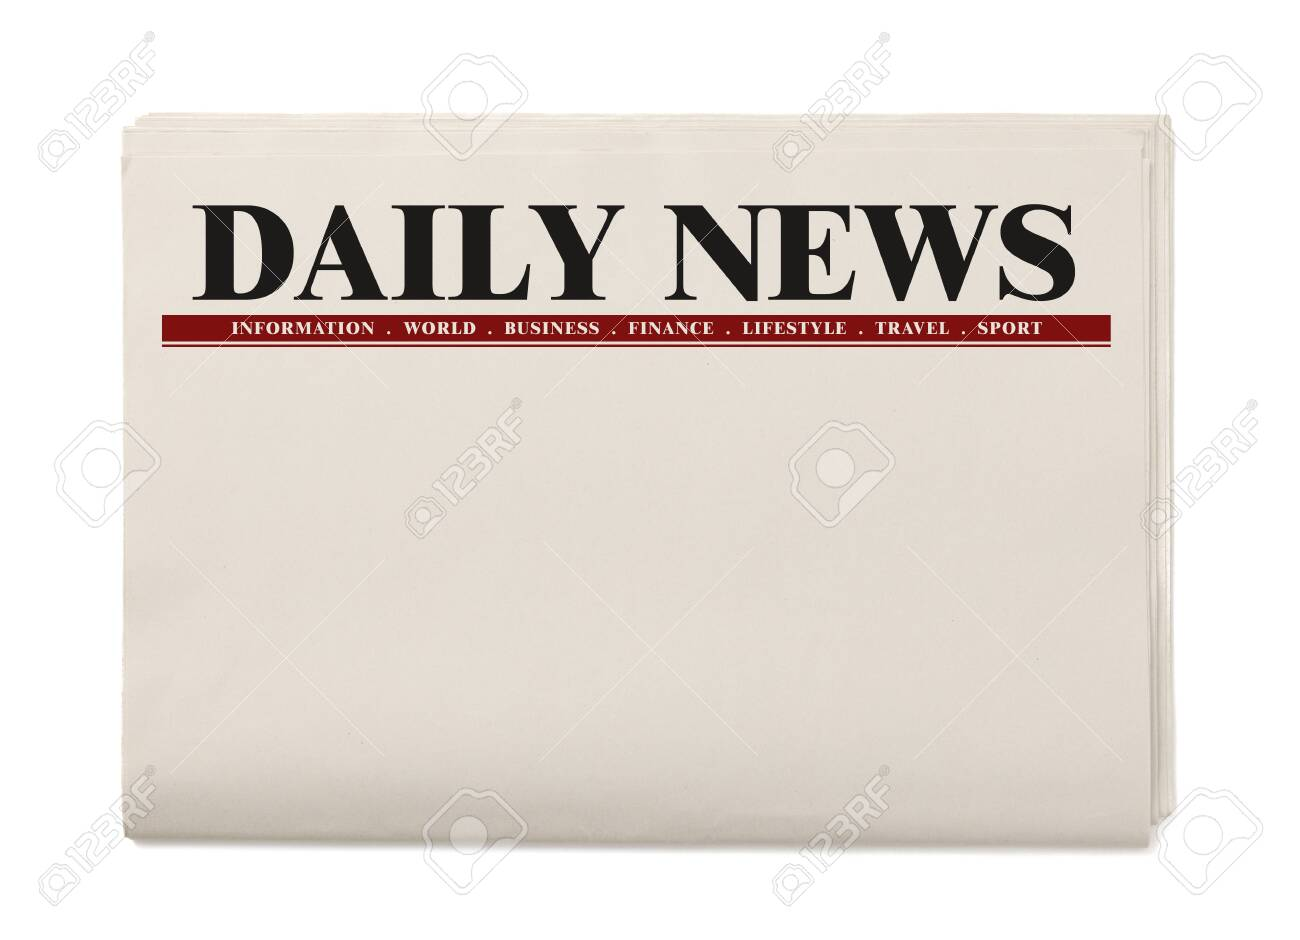 Blank Daily Newspaper isolated on white background, Daily Newspaper mock-up concept - 129785293